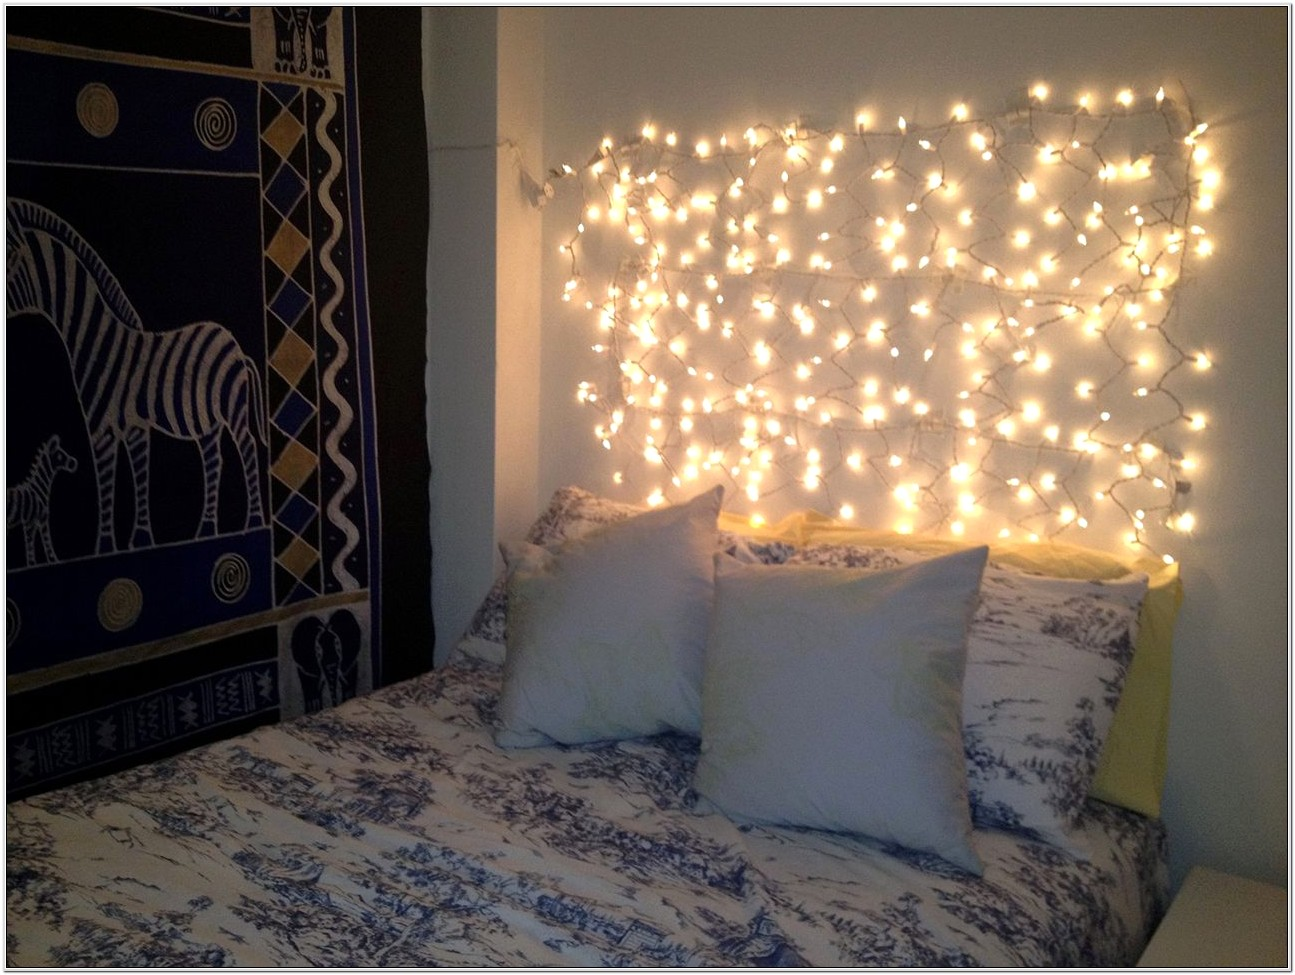 Bedroom Decorating Ideas With String Lights